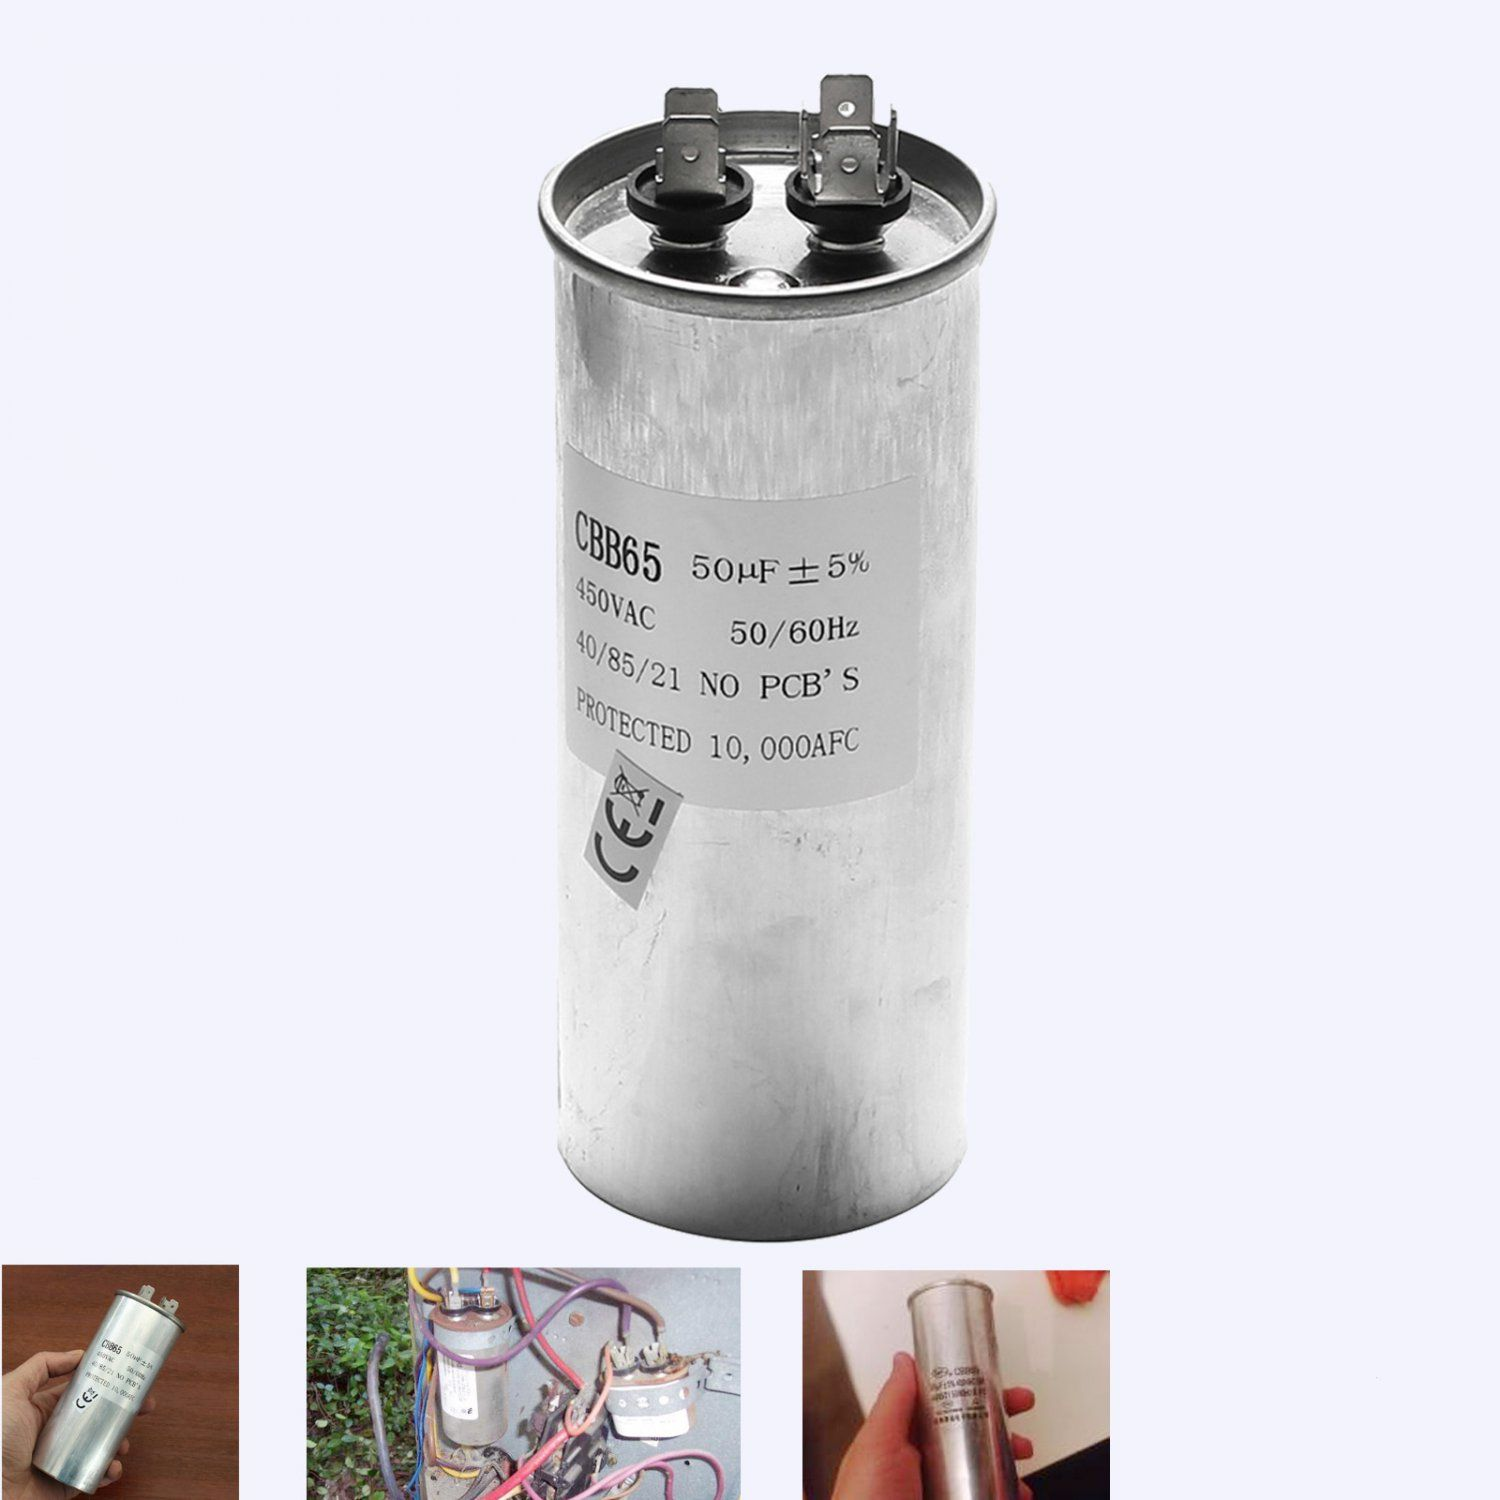 CBB65 450VAC 50uF Motor Capacitor Air Conditioner